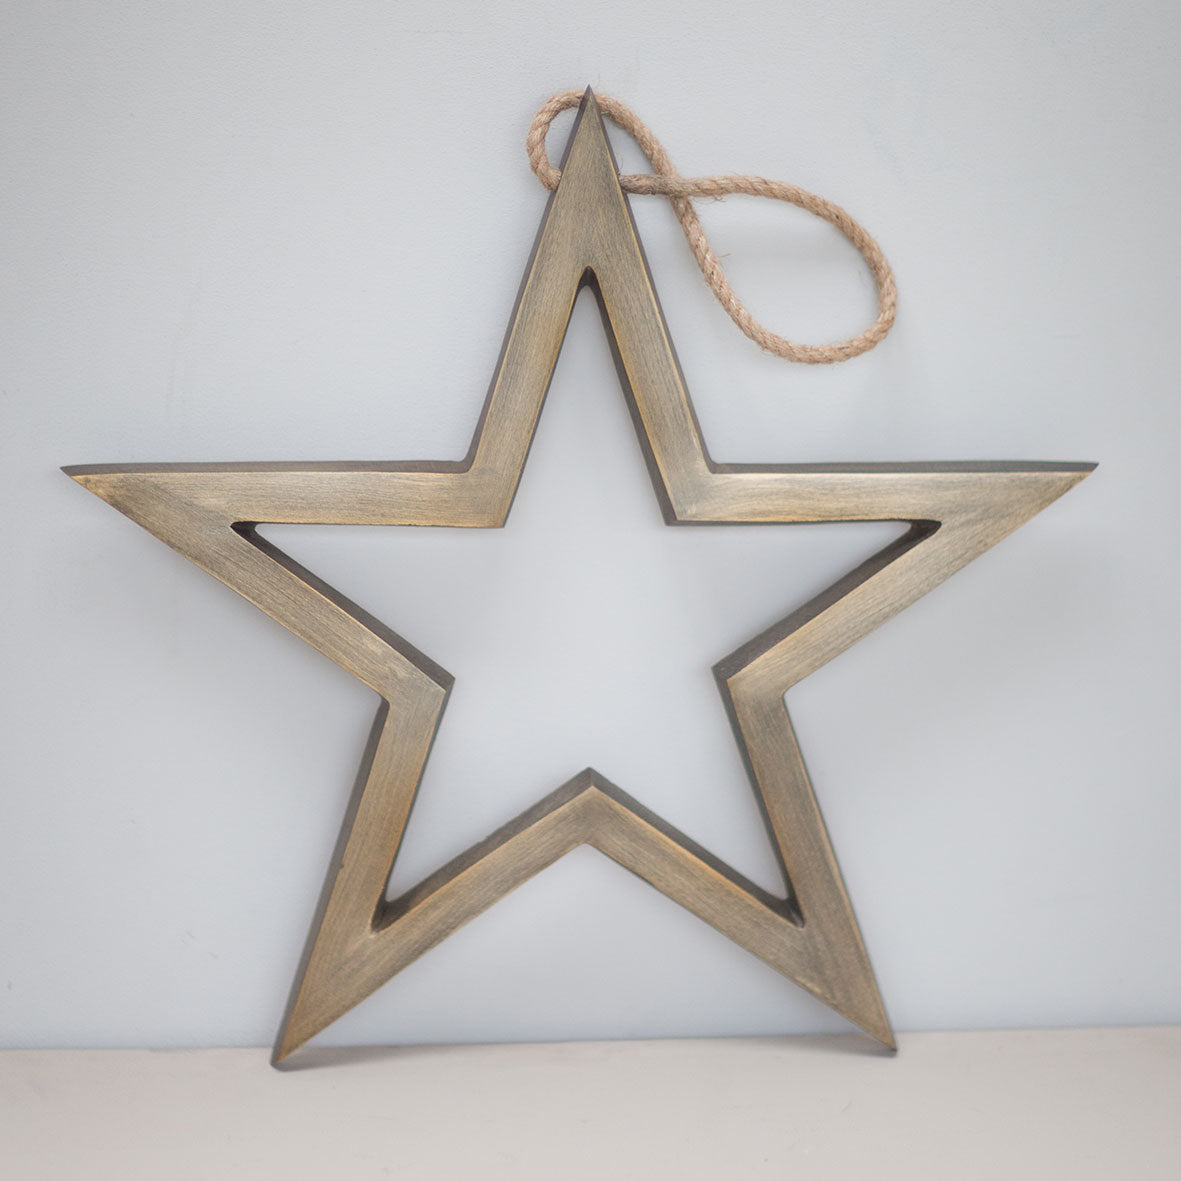 Brushed metal star